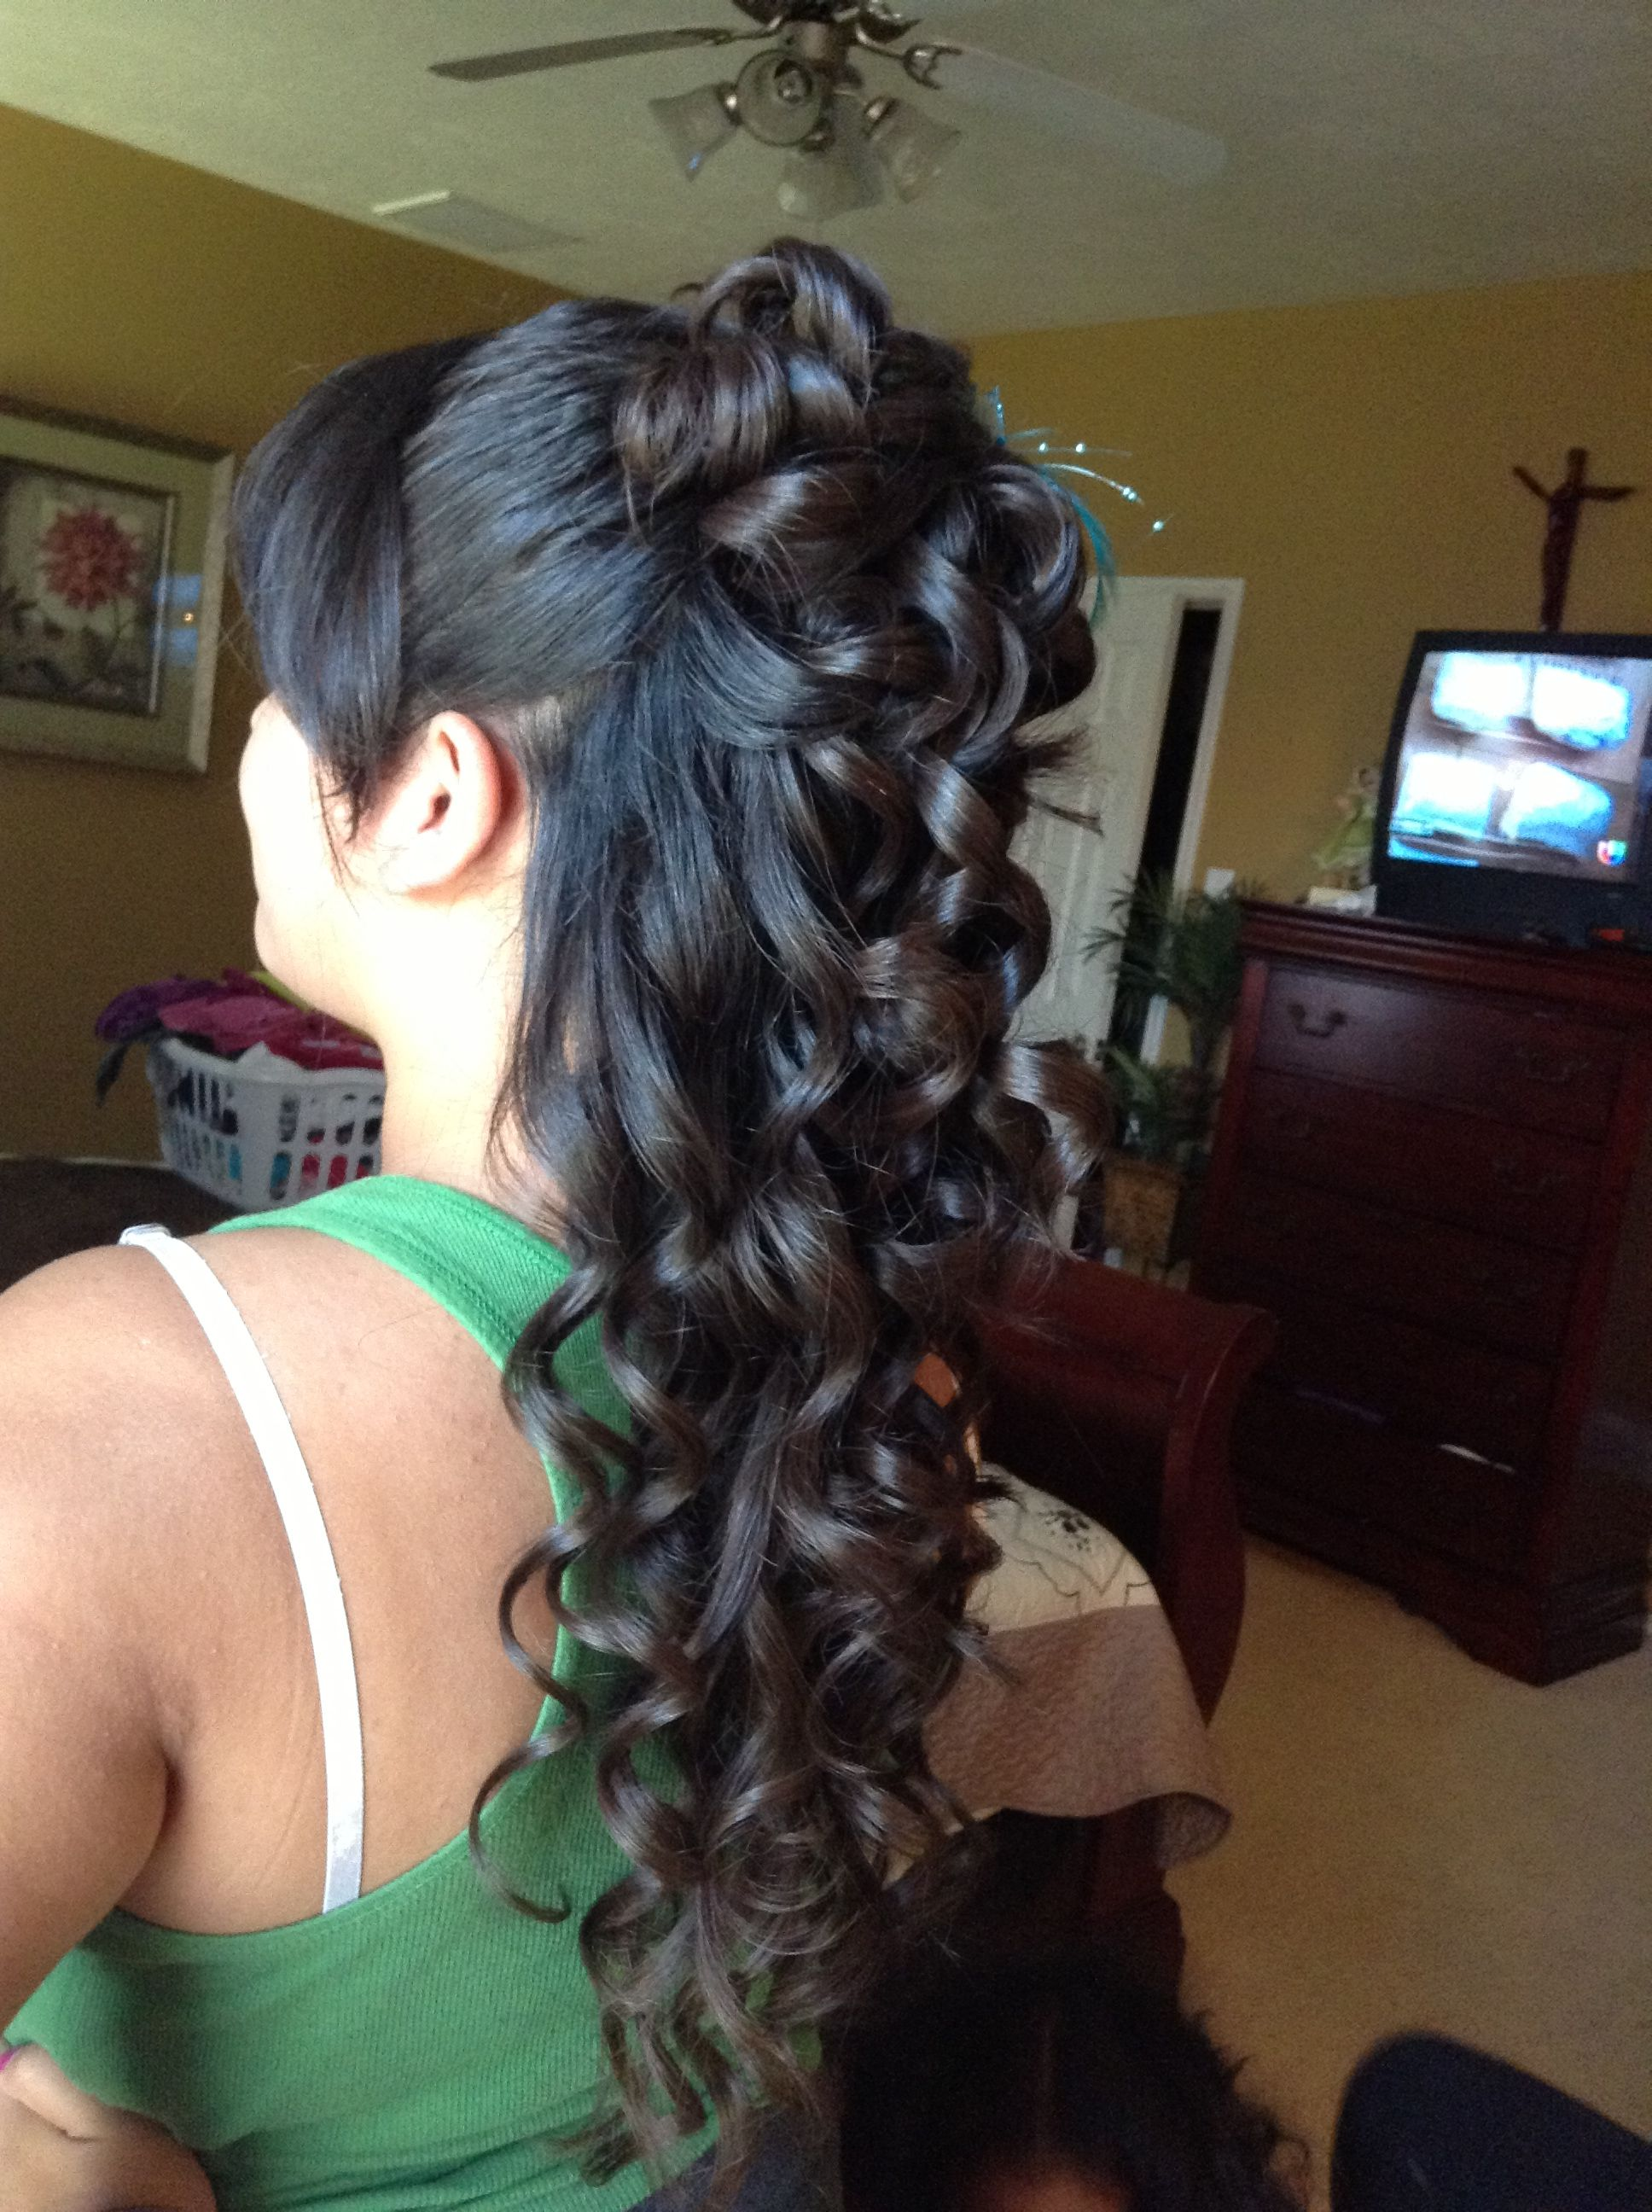 Quinceanera Hairstyle Just Add The Dyed Purple And Blue Pieces